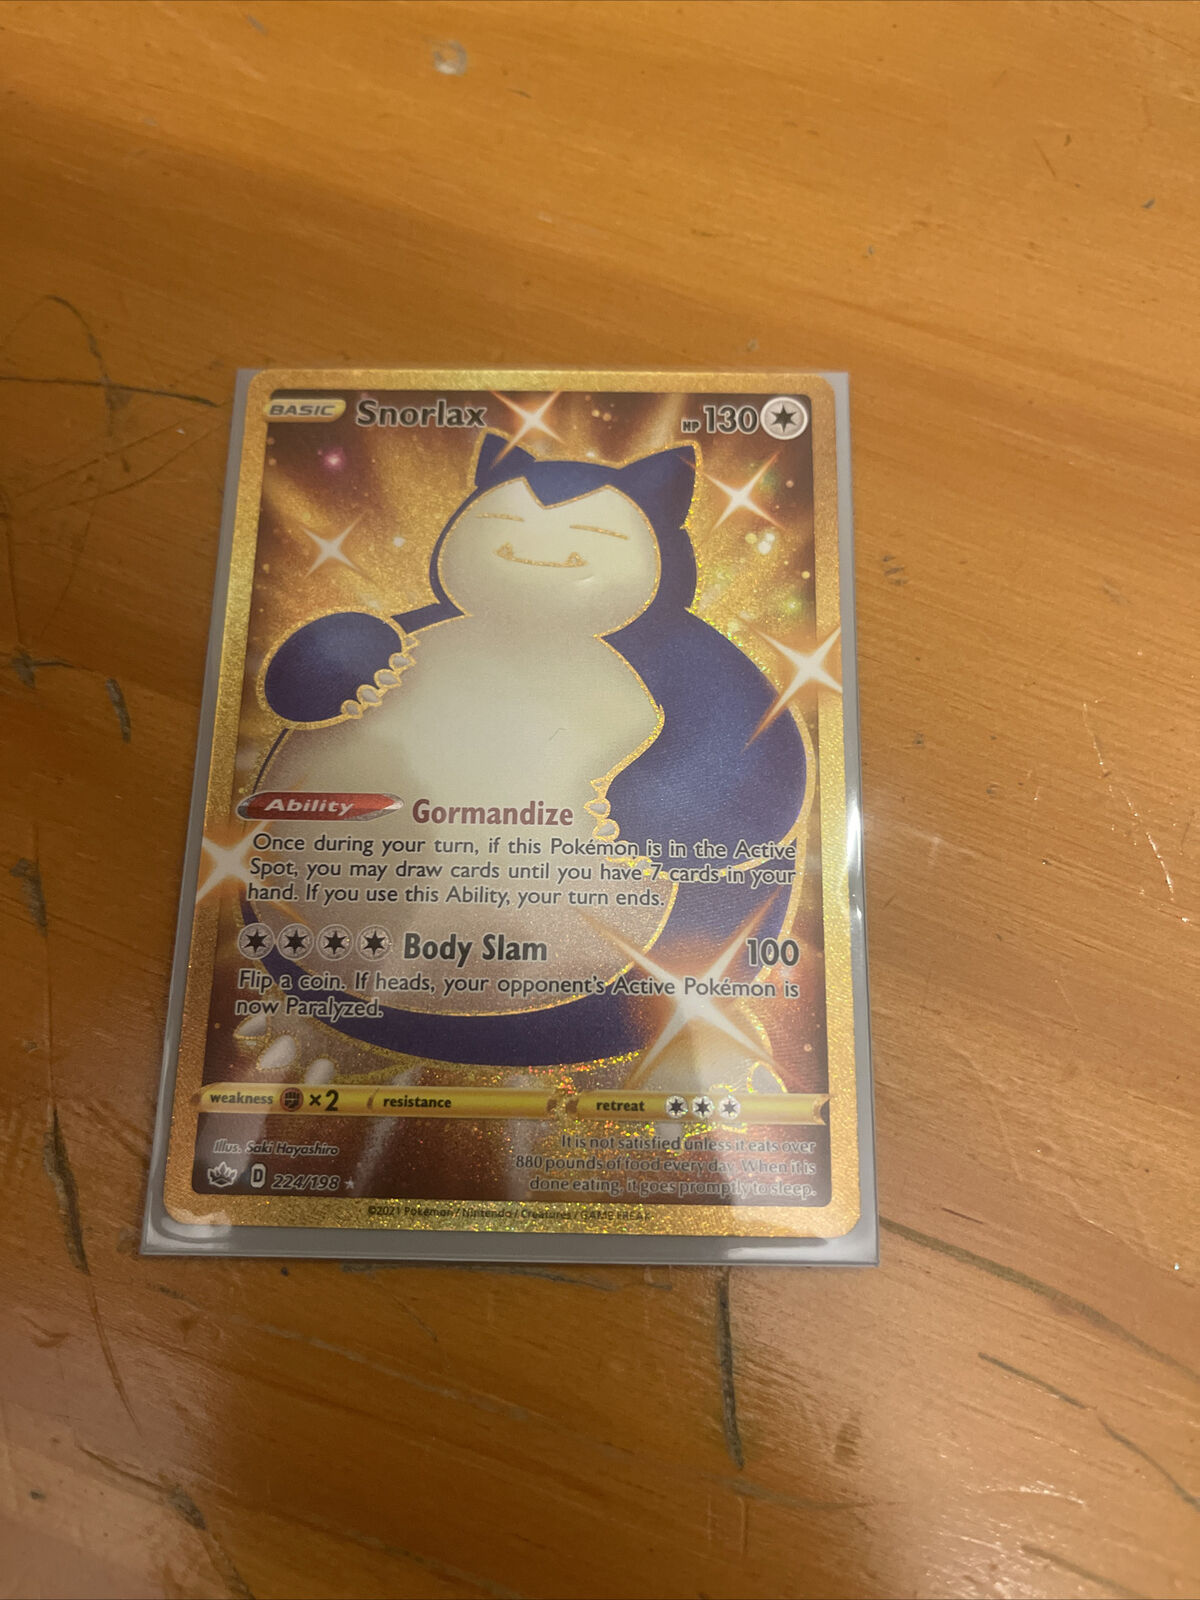 Shiny Snorlax 224/198 Chilling Reign Gold Rare Pokémon Card (From Box to Sleeve)